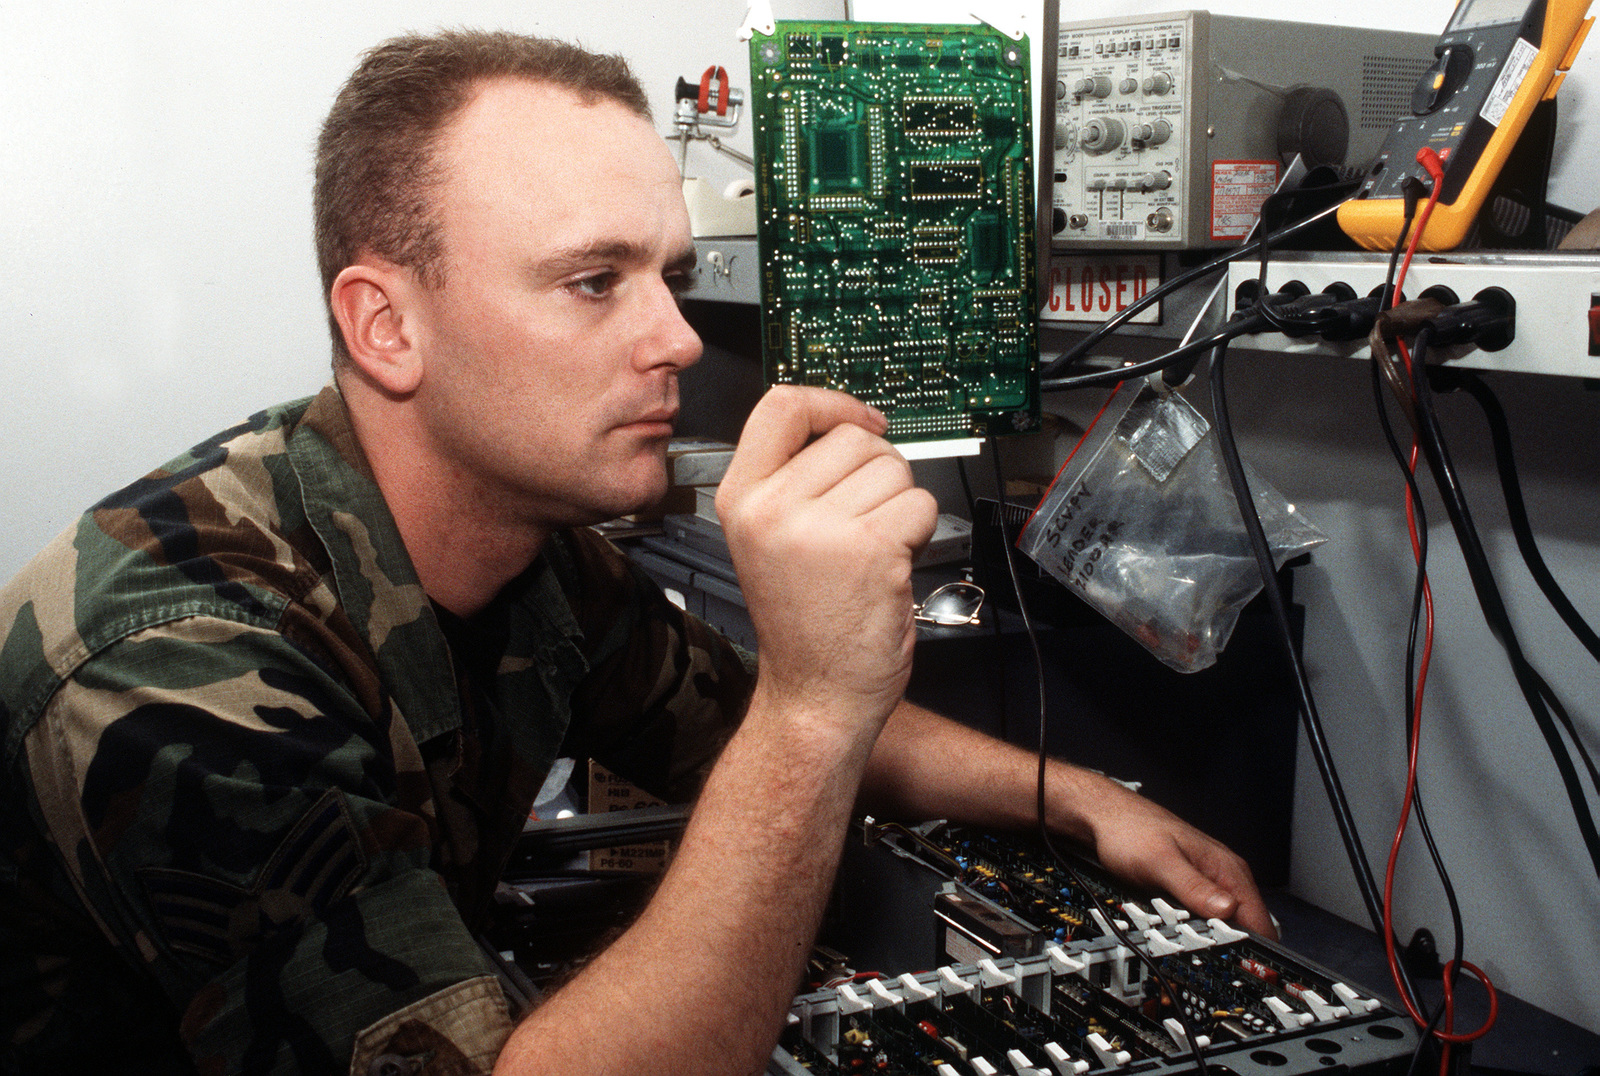 Sergeant Jorest Jacks, 61st Communications Squadron, 61st Air Base Group, repairs one of the recorders assigned to the unit at Los Angeles Air Force Base, California